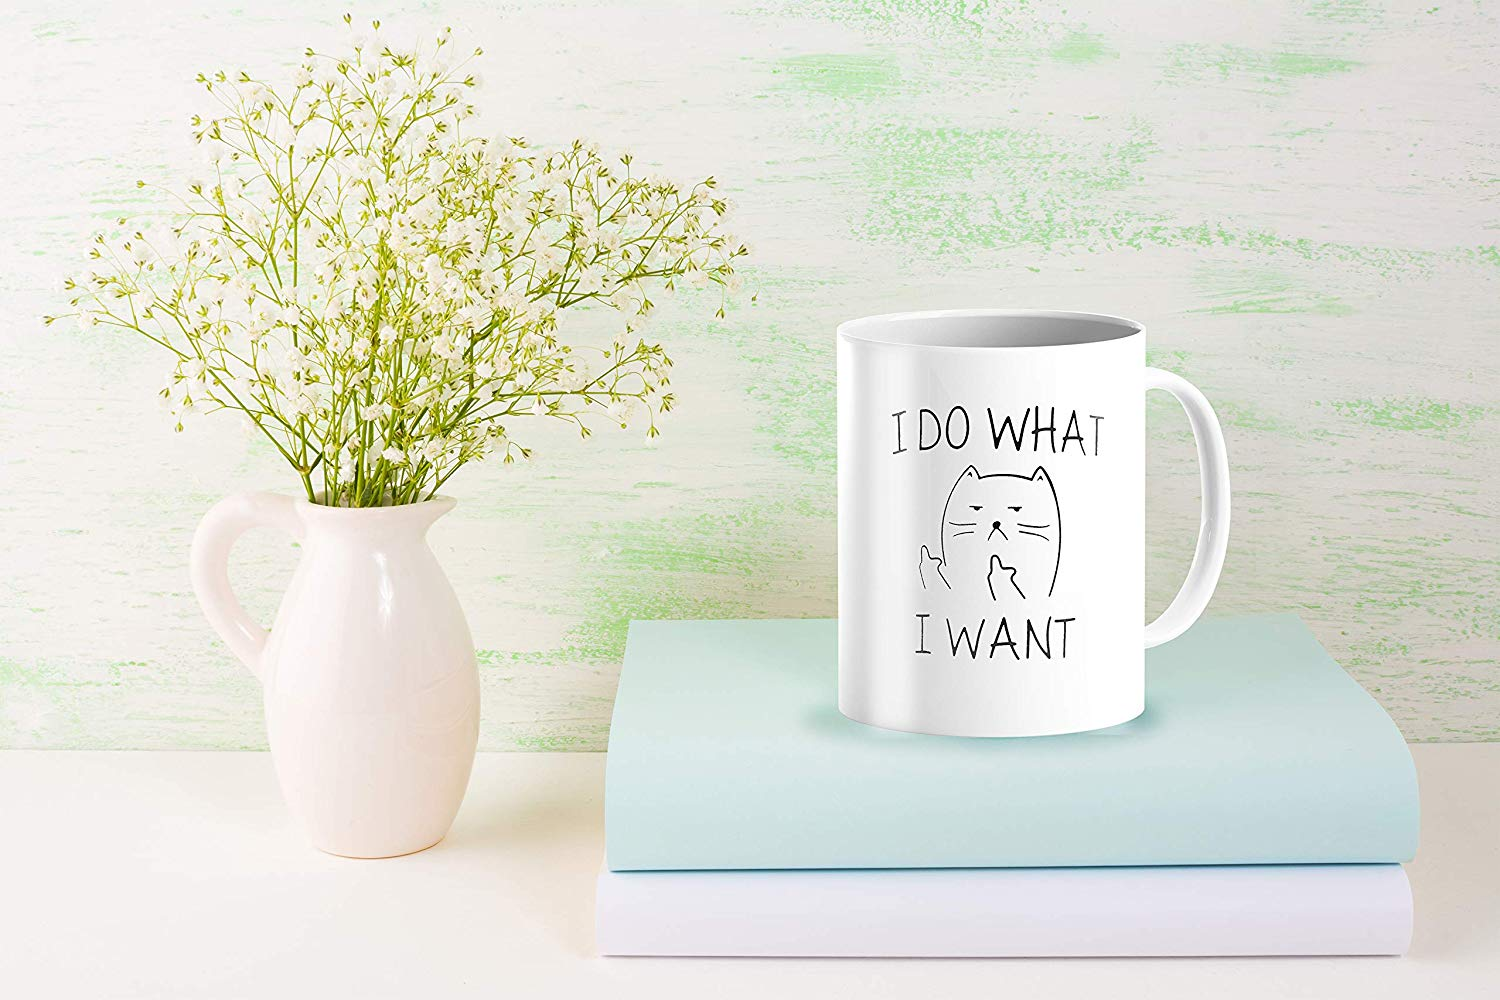 I Do What I Want Funny Coffee Mug Cat Middle Finger 11 Oz Birthday Gift For Men Women Him Or Her B079FX31TX 6